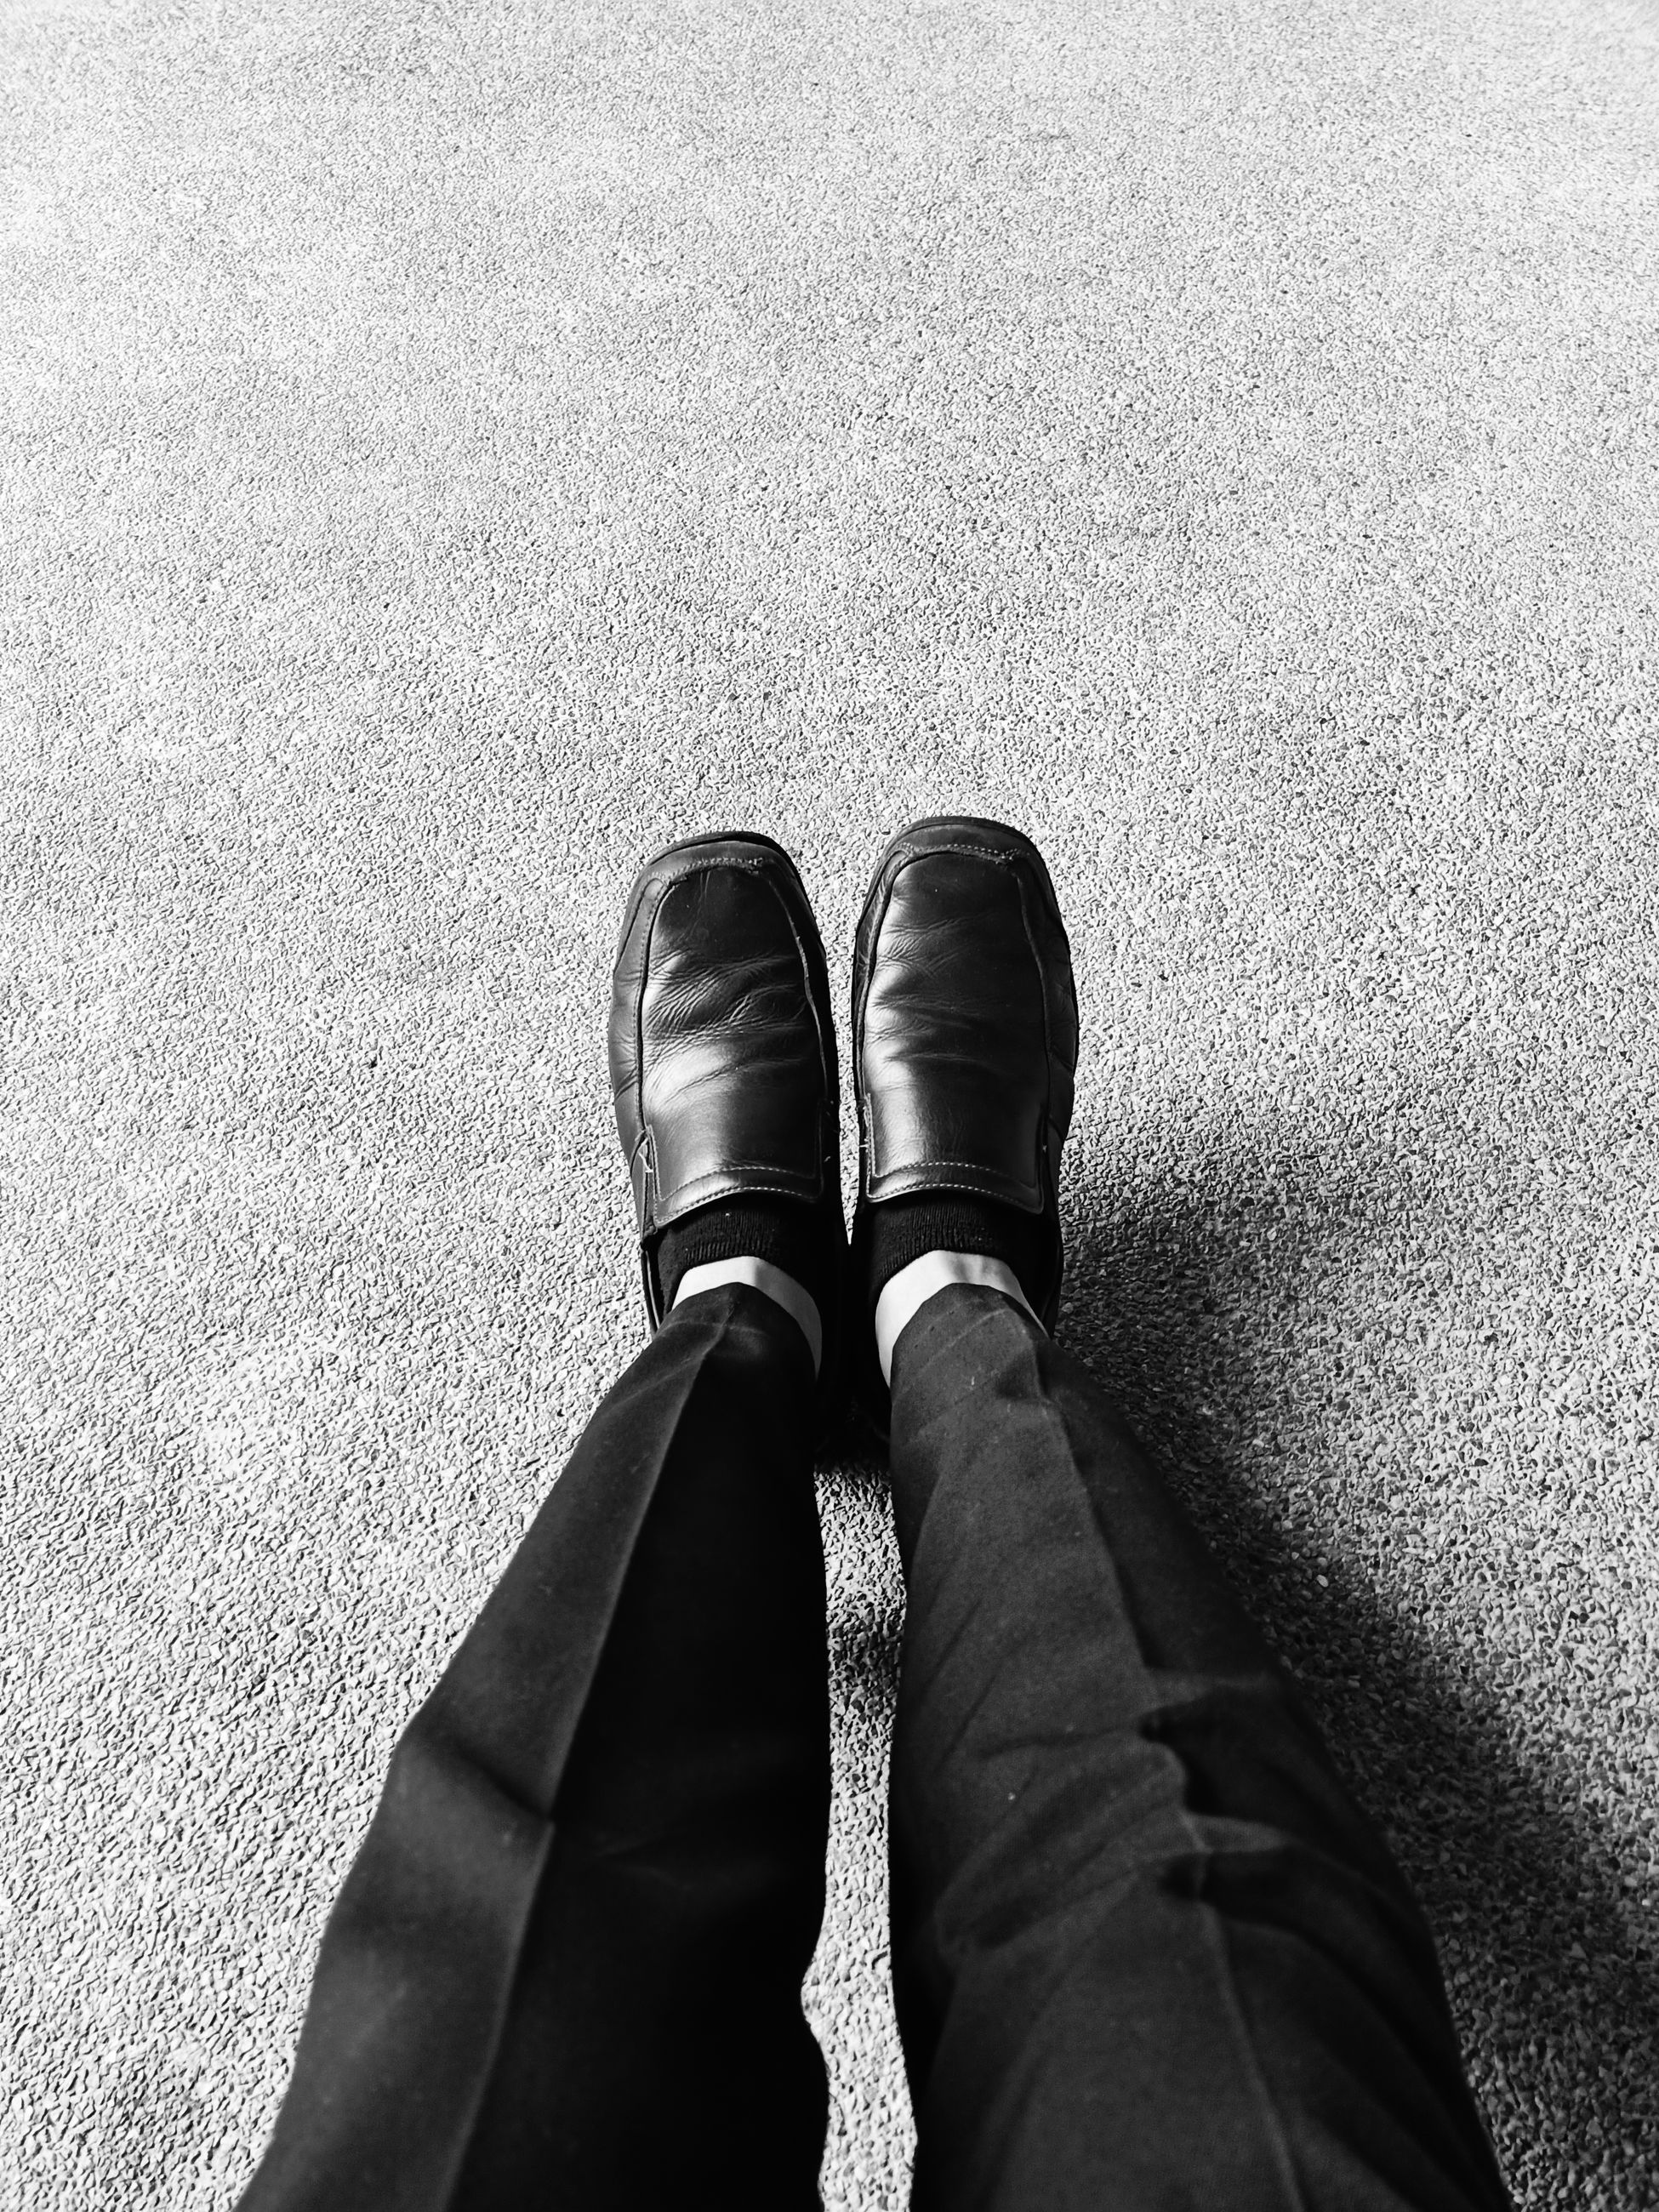 shoe, human leg, low section, one person, personal perspective, body part, real people, high angle view, standing, human body part, lifestyles, day, men, human foot, leisure activity, directly above, outdoors, sunlight, clothing, leather